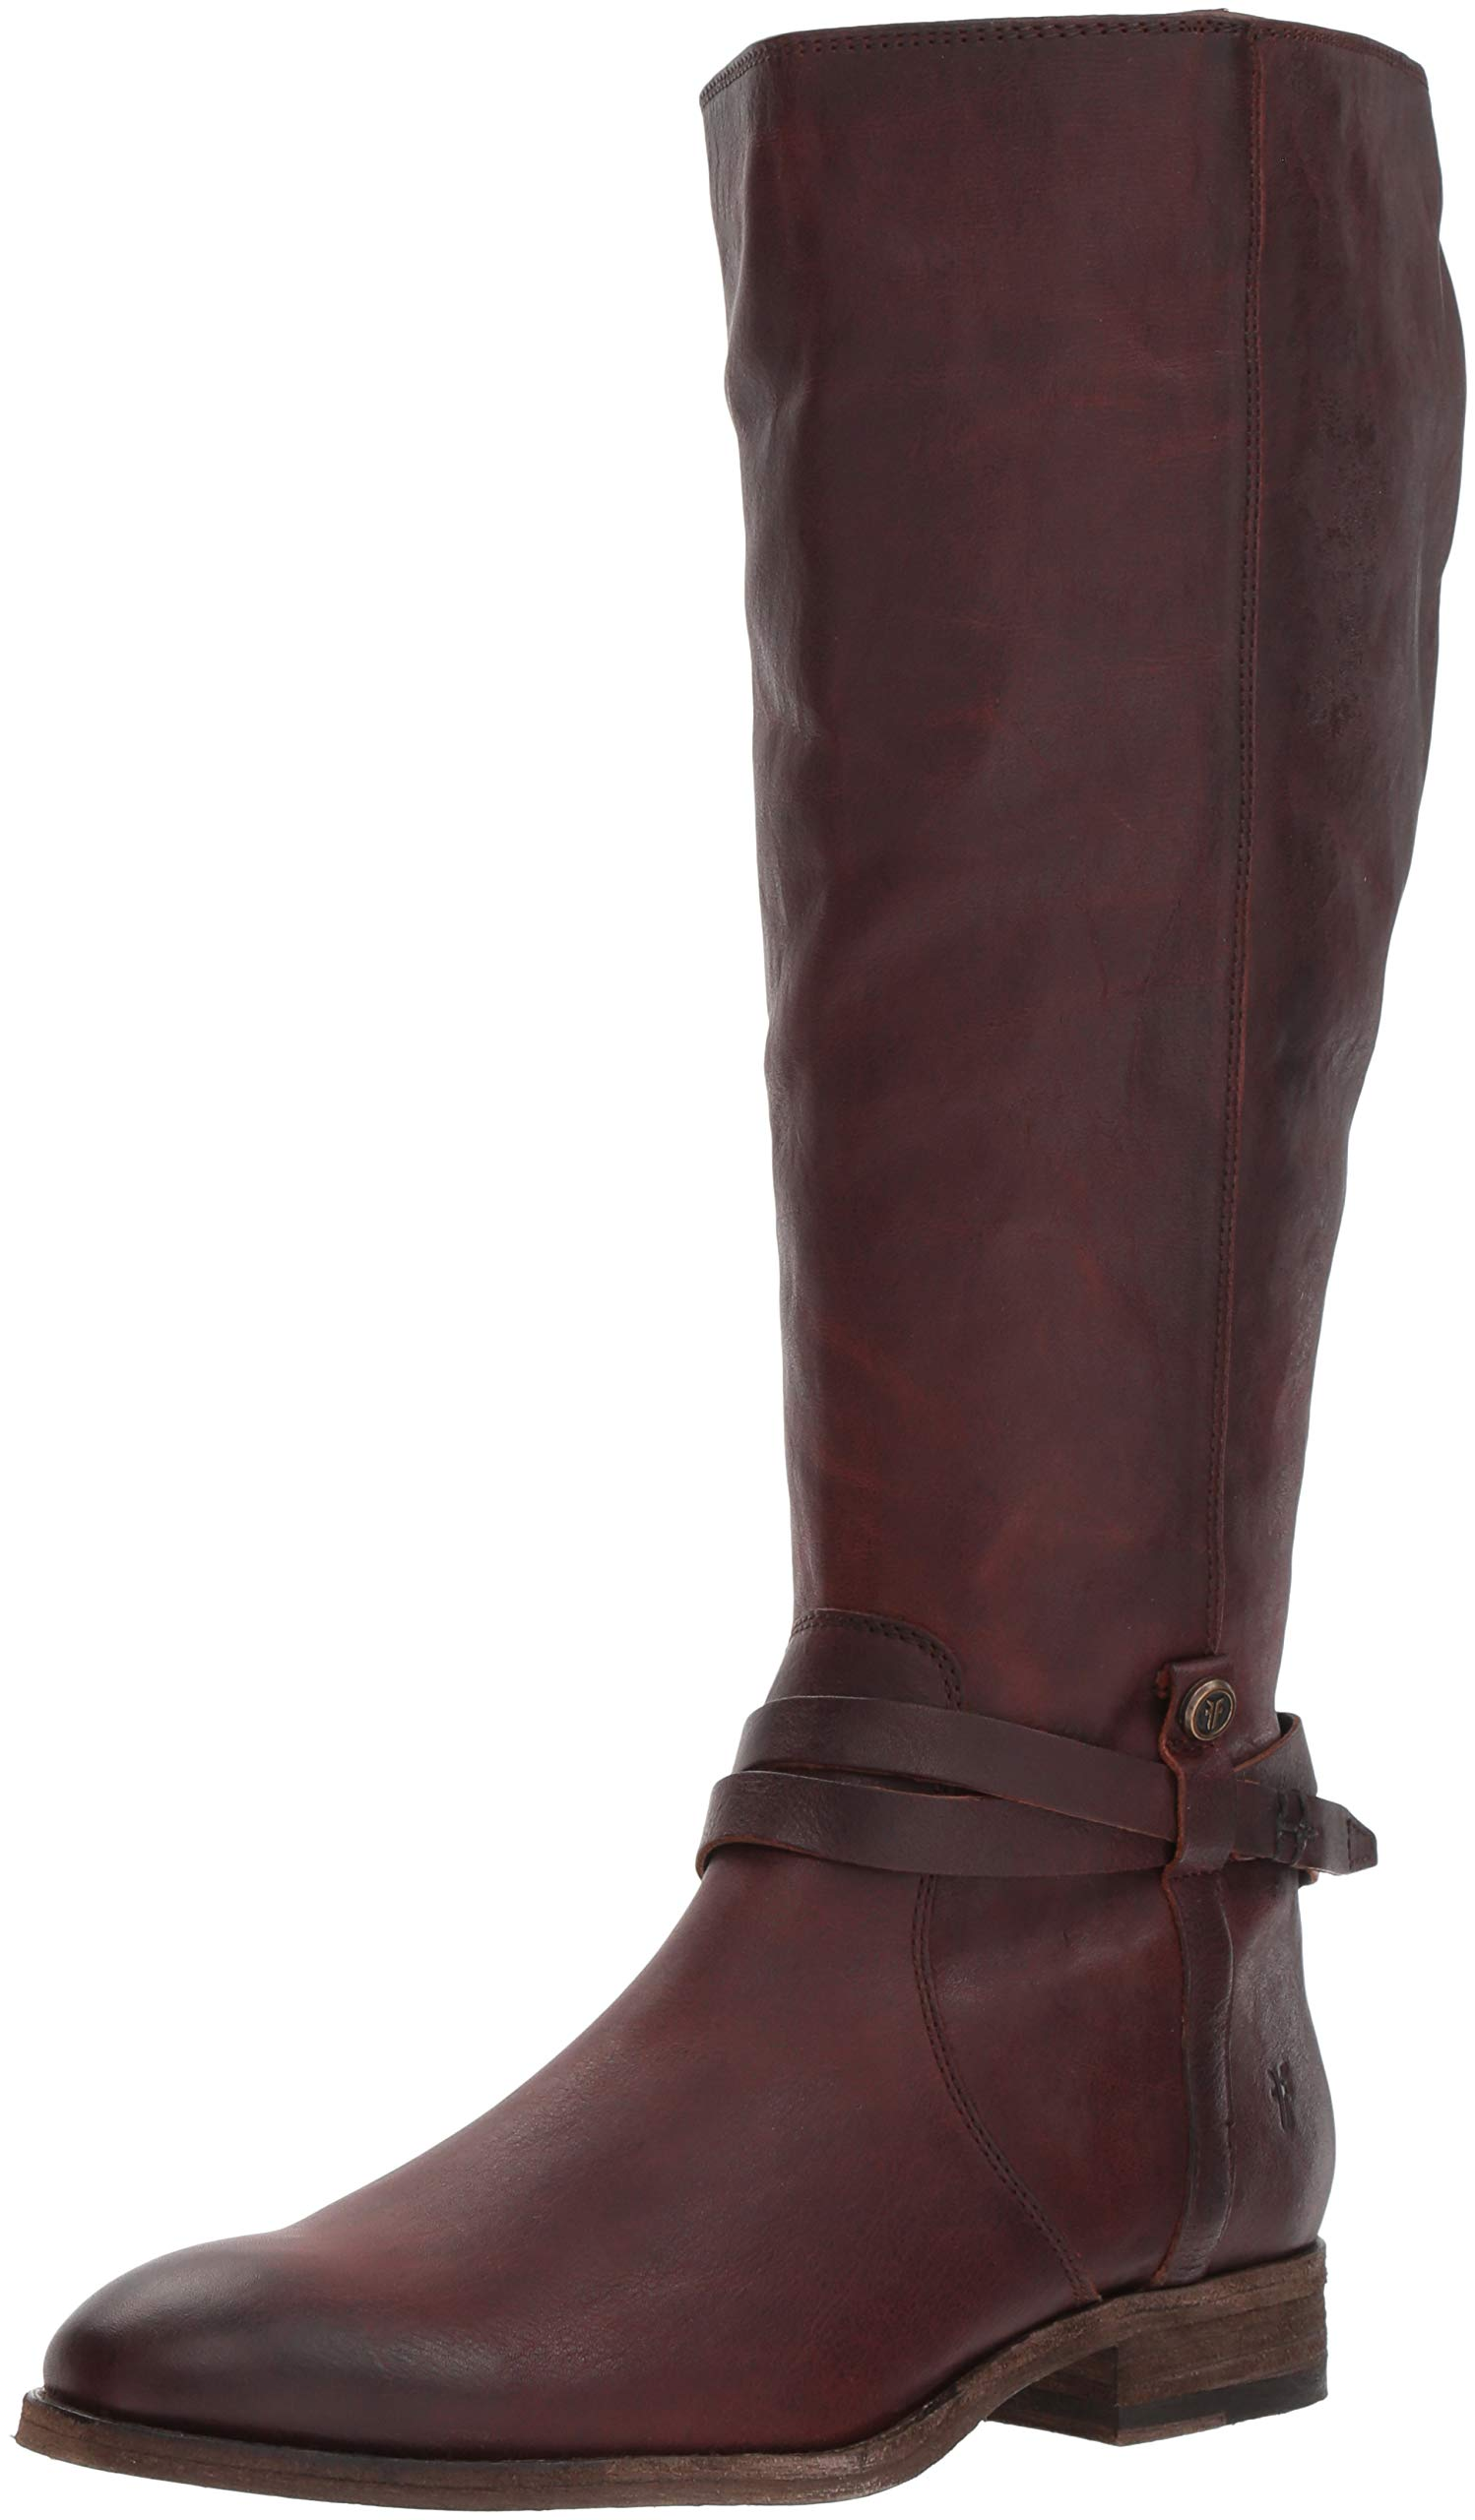 FRYE Women's Melissa Belted Tall Knee High Boot, Redwood Extended, 10 M US by FRYE